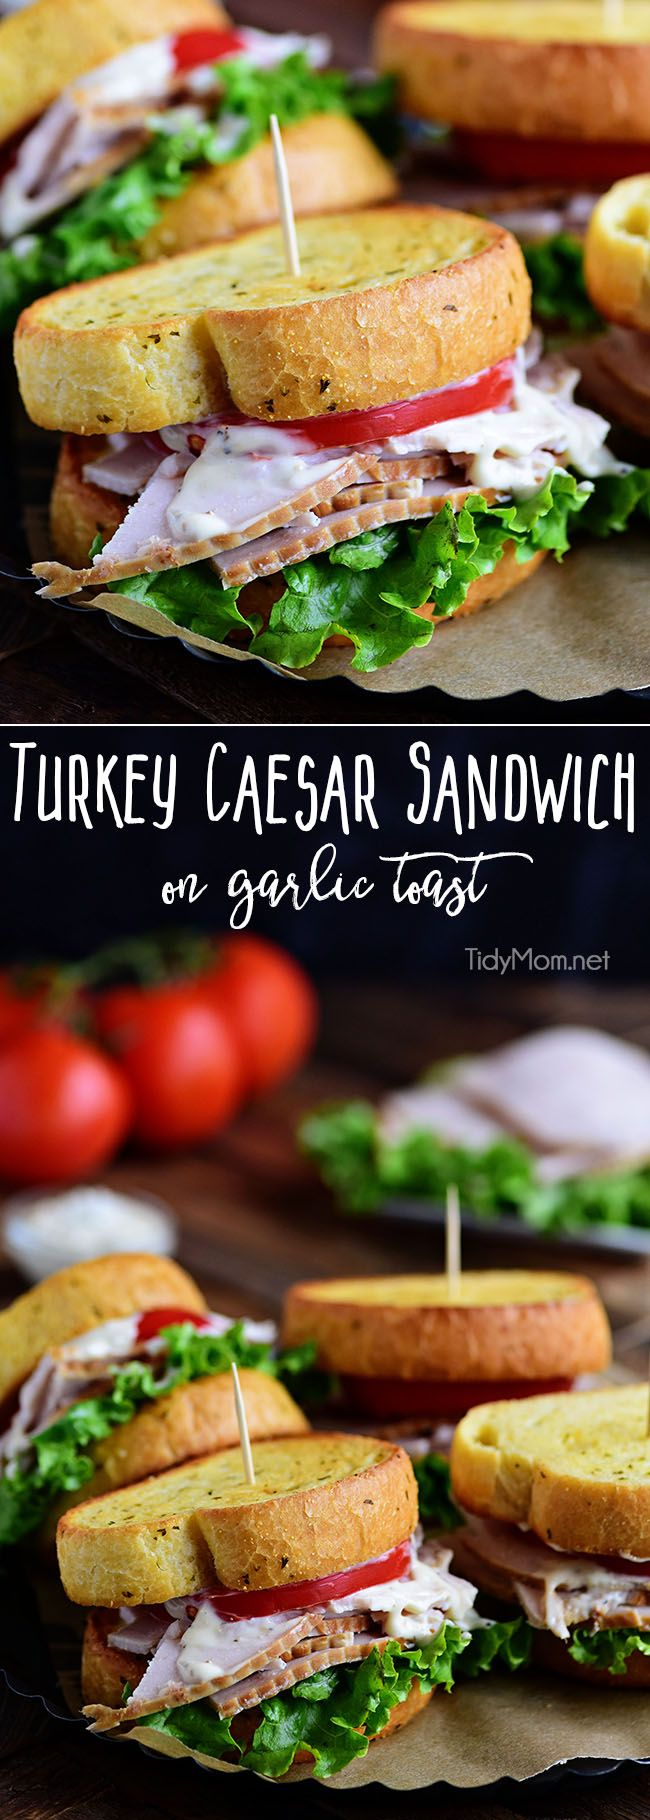 Texas garlic toast turns an ordinary Turkey Caesar Sandwich into something special. It's the perfect way to use up leftover Thanksgiving turkey or enjoy any day with deli sliced turkey! Print recipe at TidyMom.net